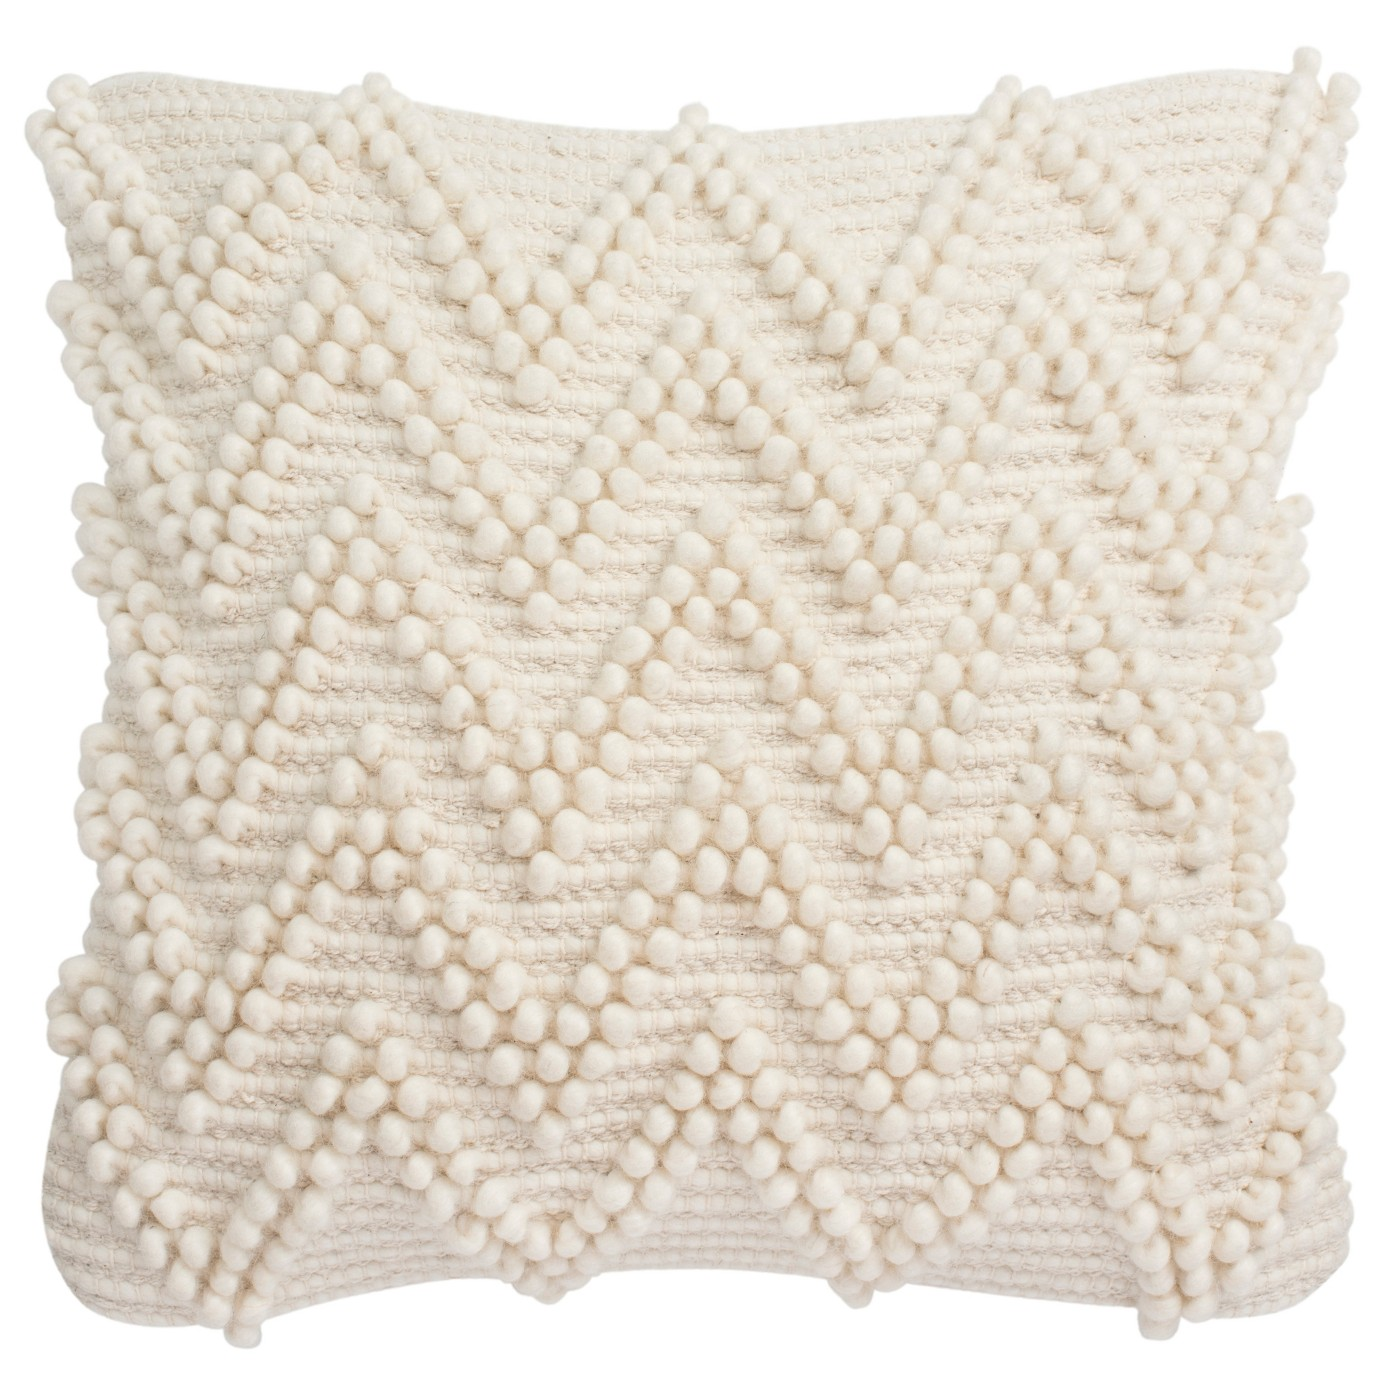 Jumbo Chevron Loop Square Throw Pillow Natural - Safavieh - image 1 of 3